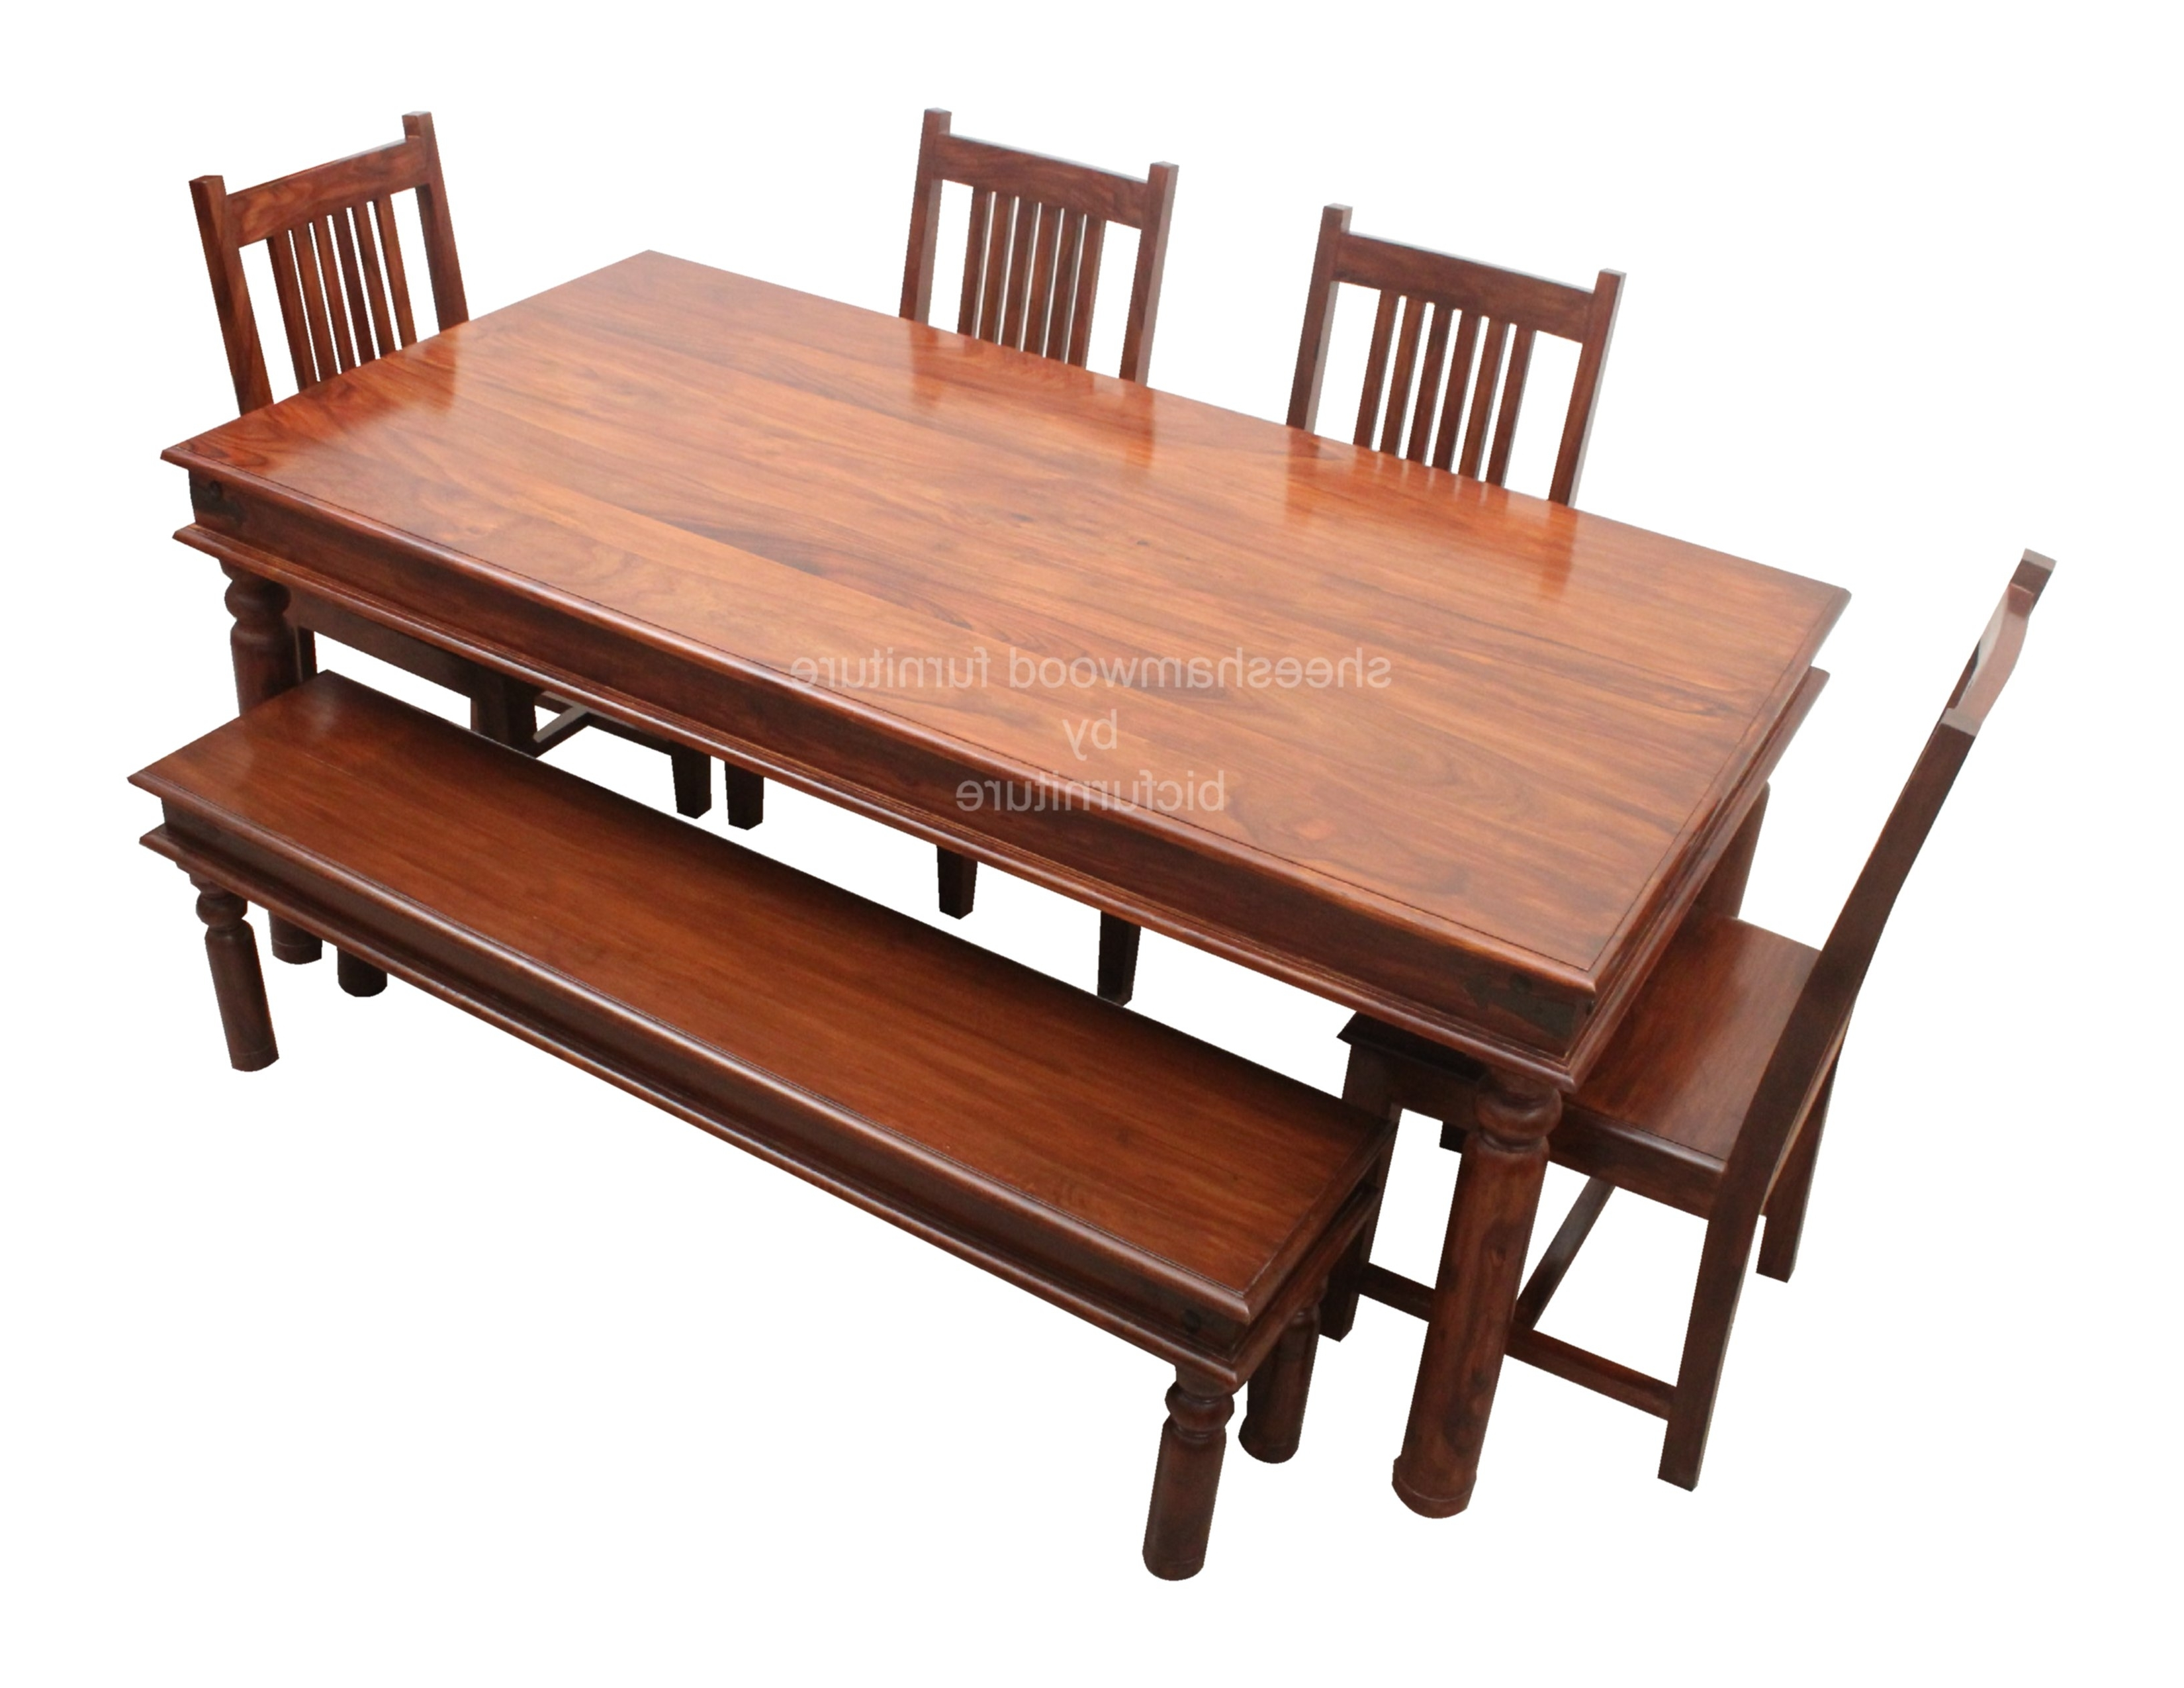 Sturdy Solid Wood Dining Set In Sheesham Wood In Well Known Six Seater Dining Tables (View 24 of 25)